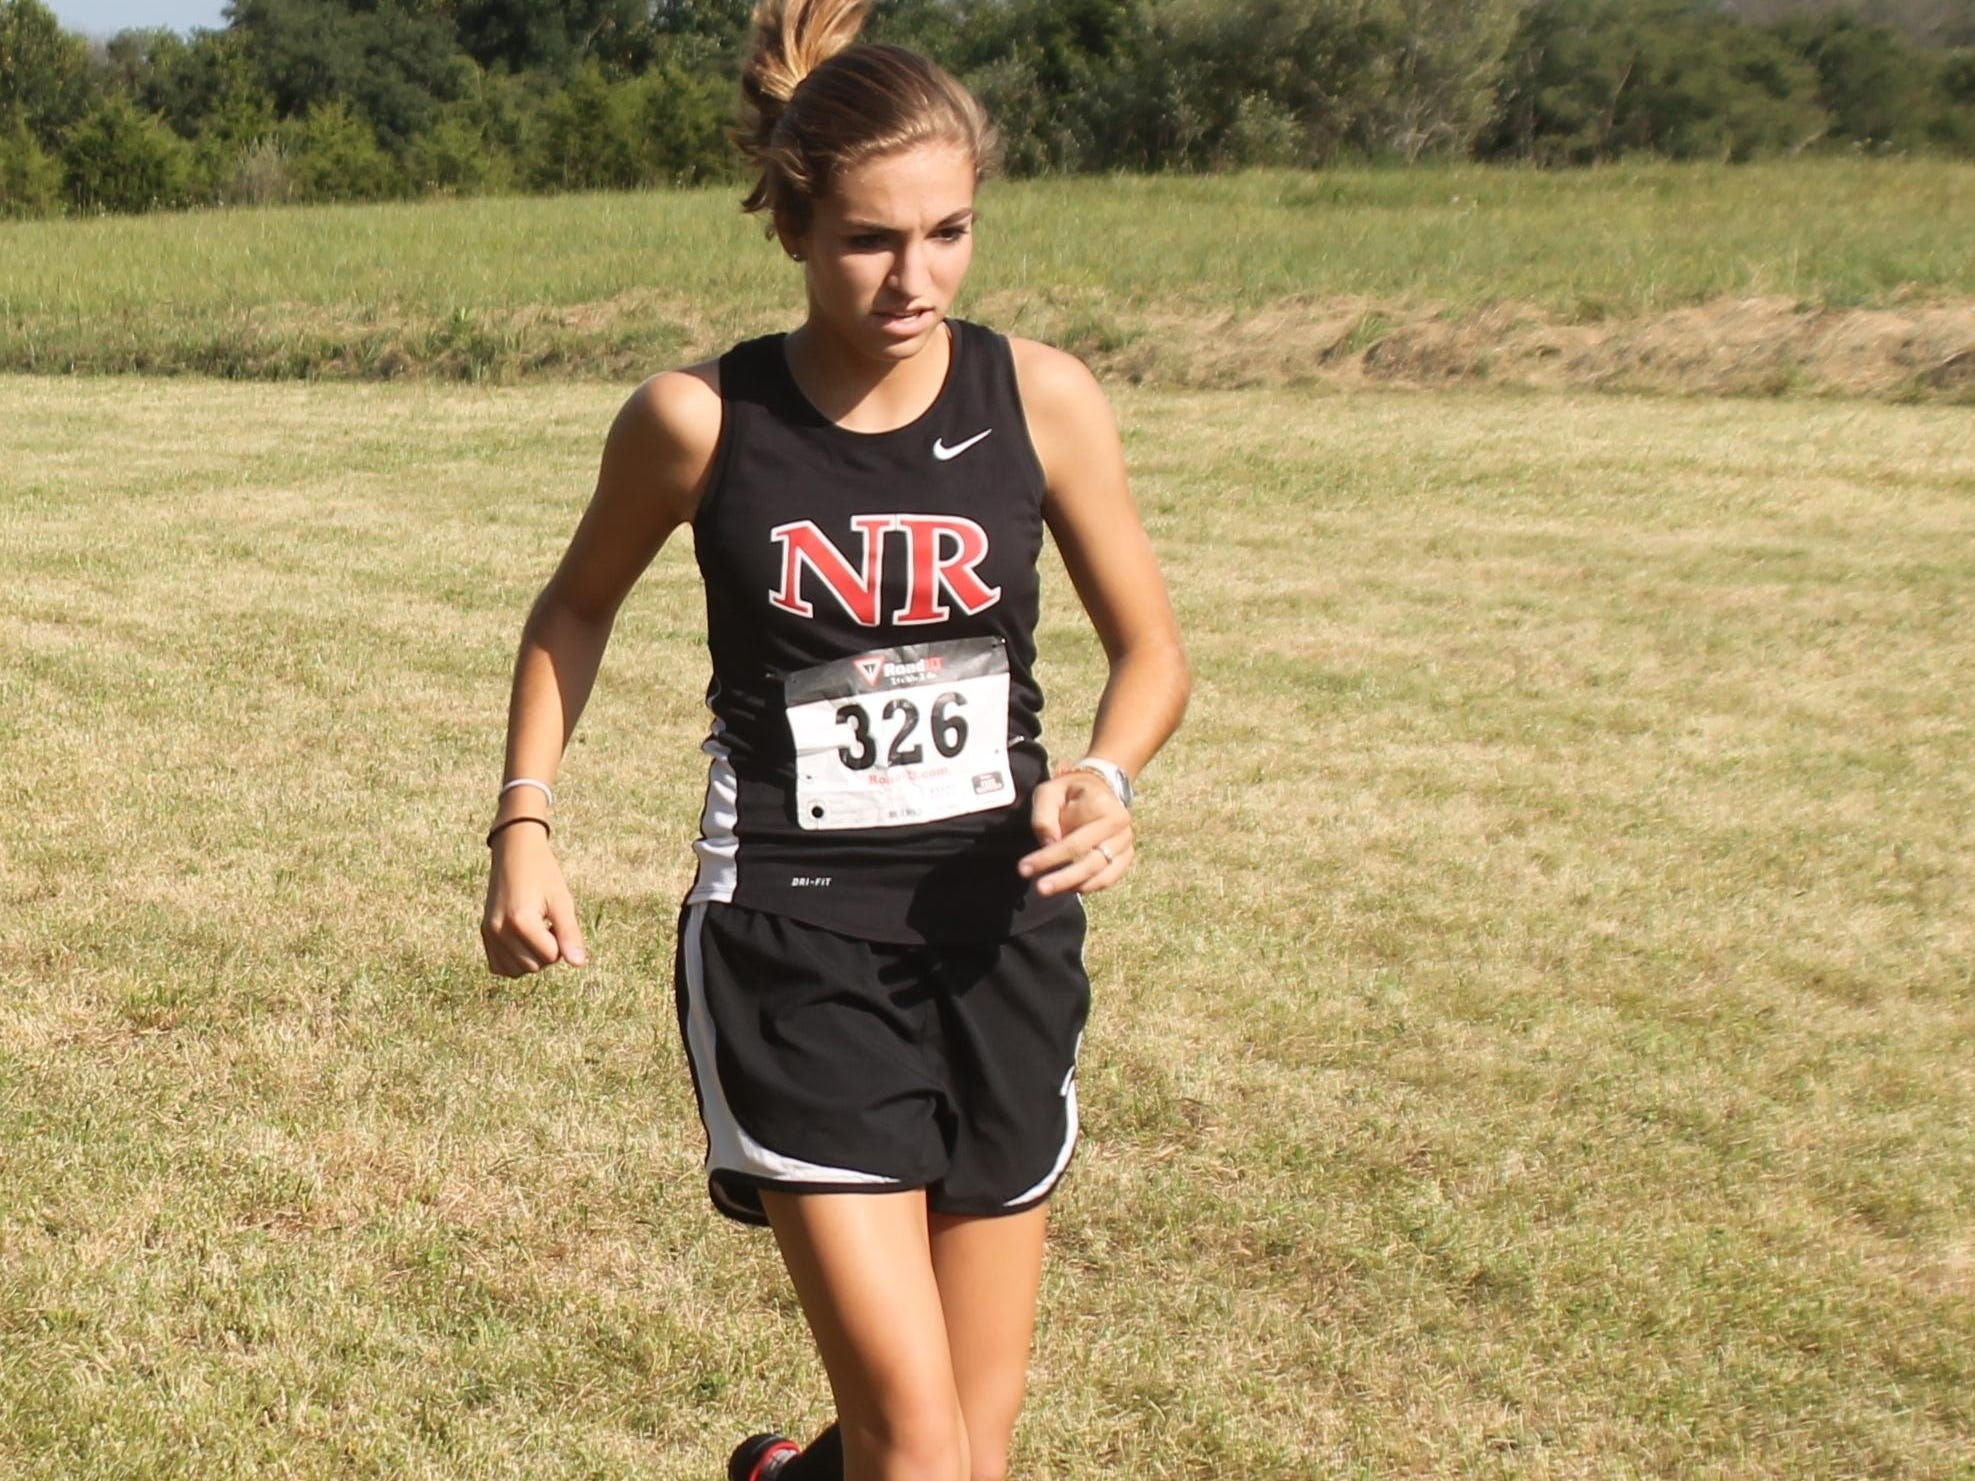 New Richmond junior Shelbi Simpson works on her pacing.